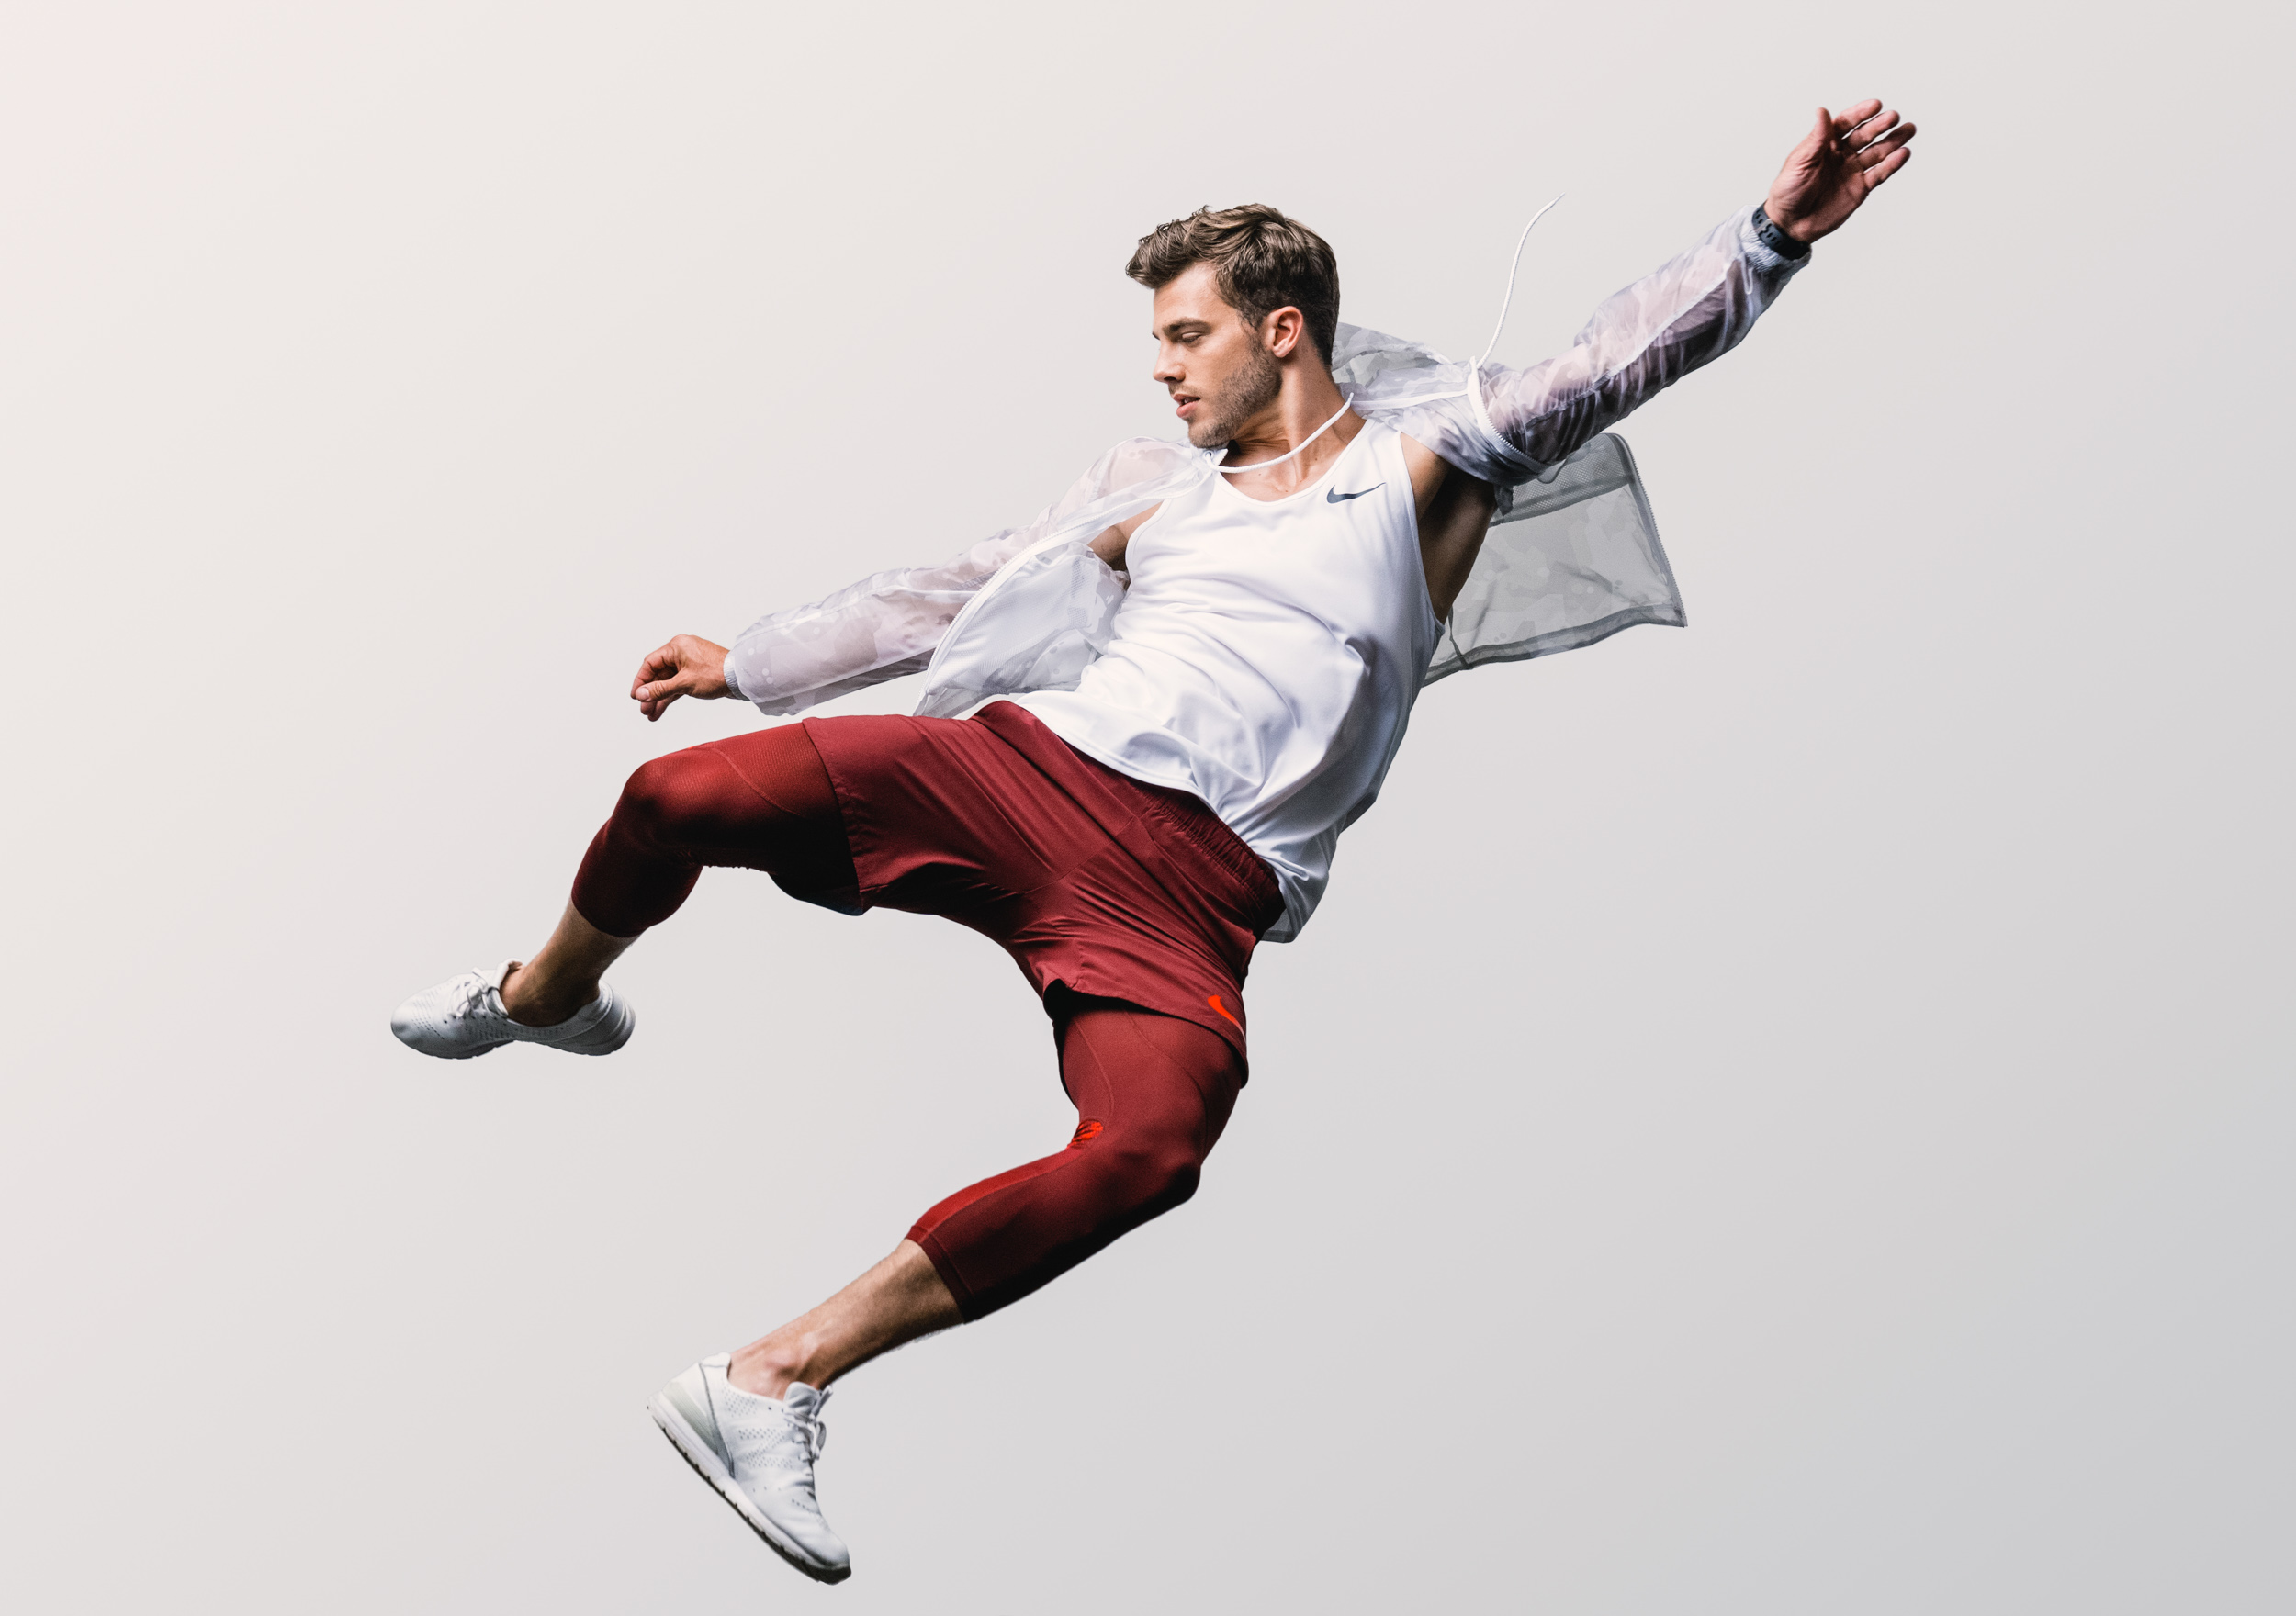 Male athlete in track jacket and red Nike pants jumps into the air in studio